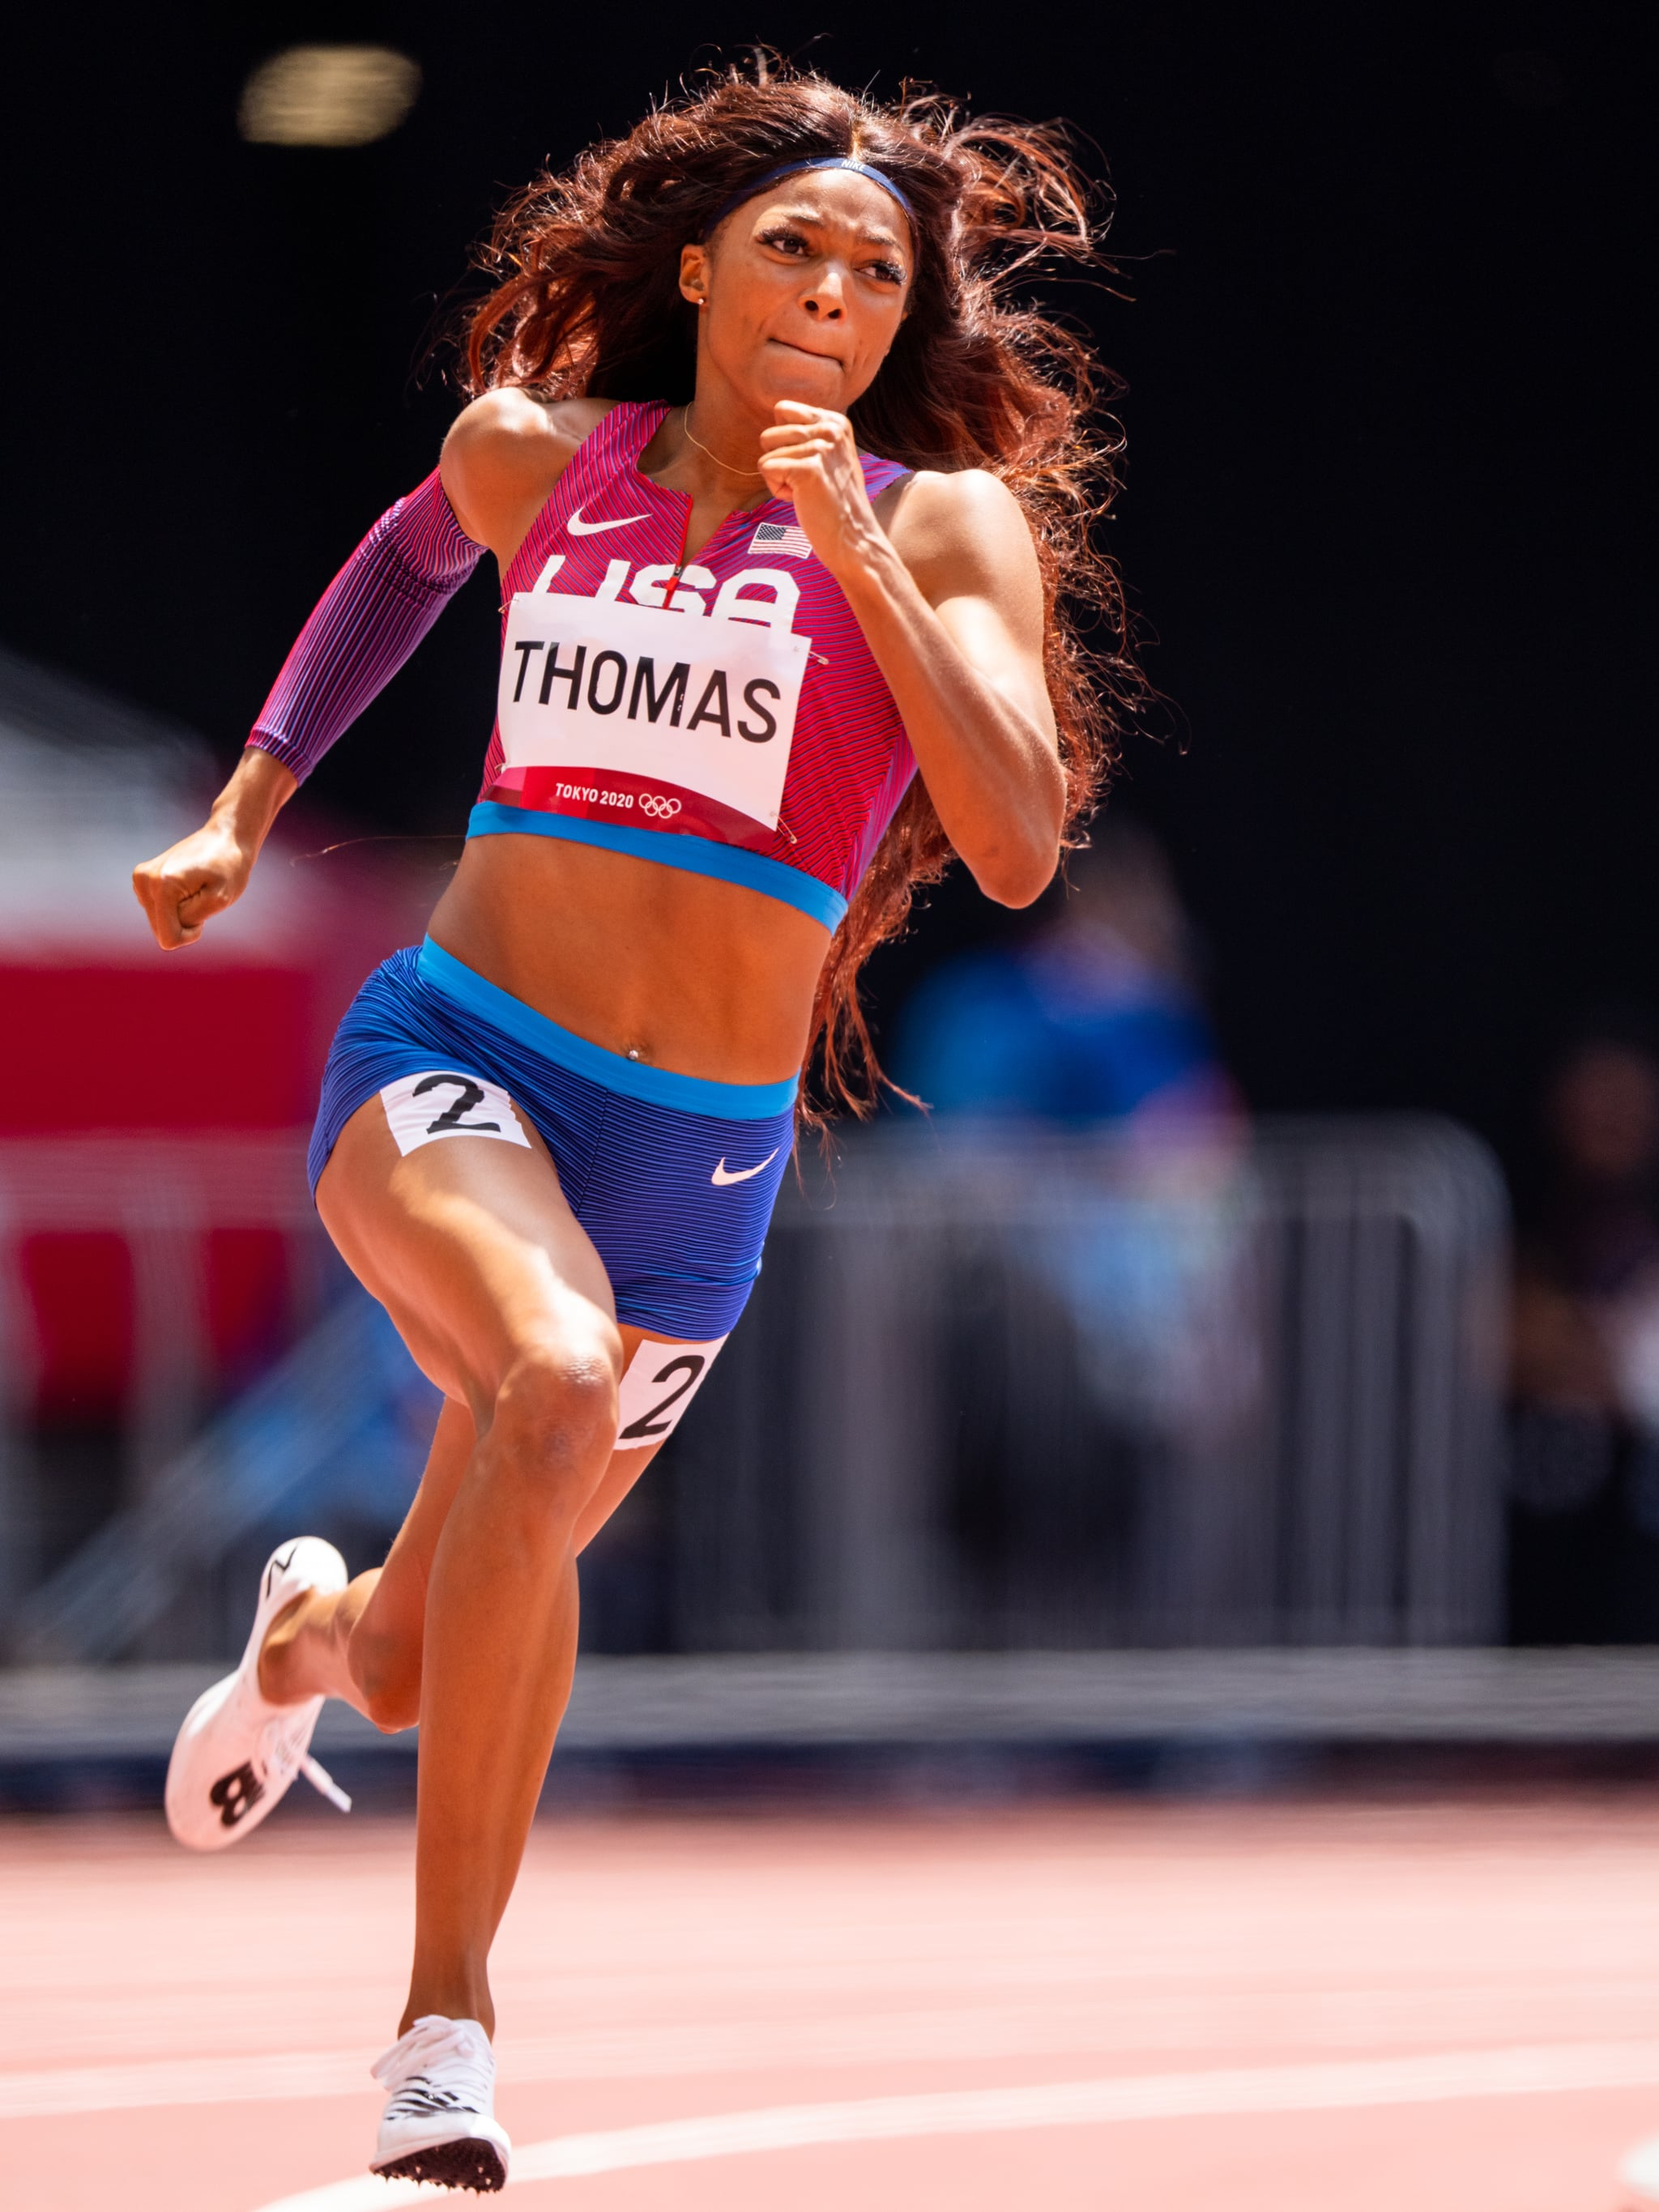 TOKYO, JAPAN - AUGUST 2: Gabrielle Thomas of United States of America competing in the Women's 200m Round 1 during the Tokyo 2020 Olympic Games at the Olympic Stadium on August 2, 2021 in Tokyo, Japan (Photo by Ronald Hoogendoorn/BSR Agency/Getty Images)